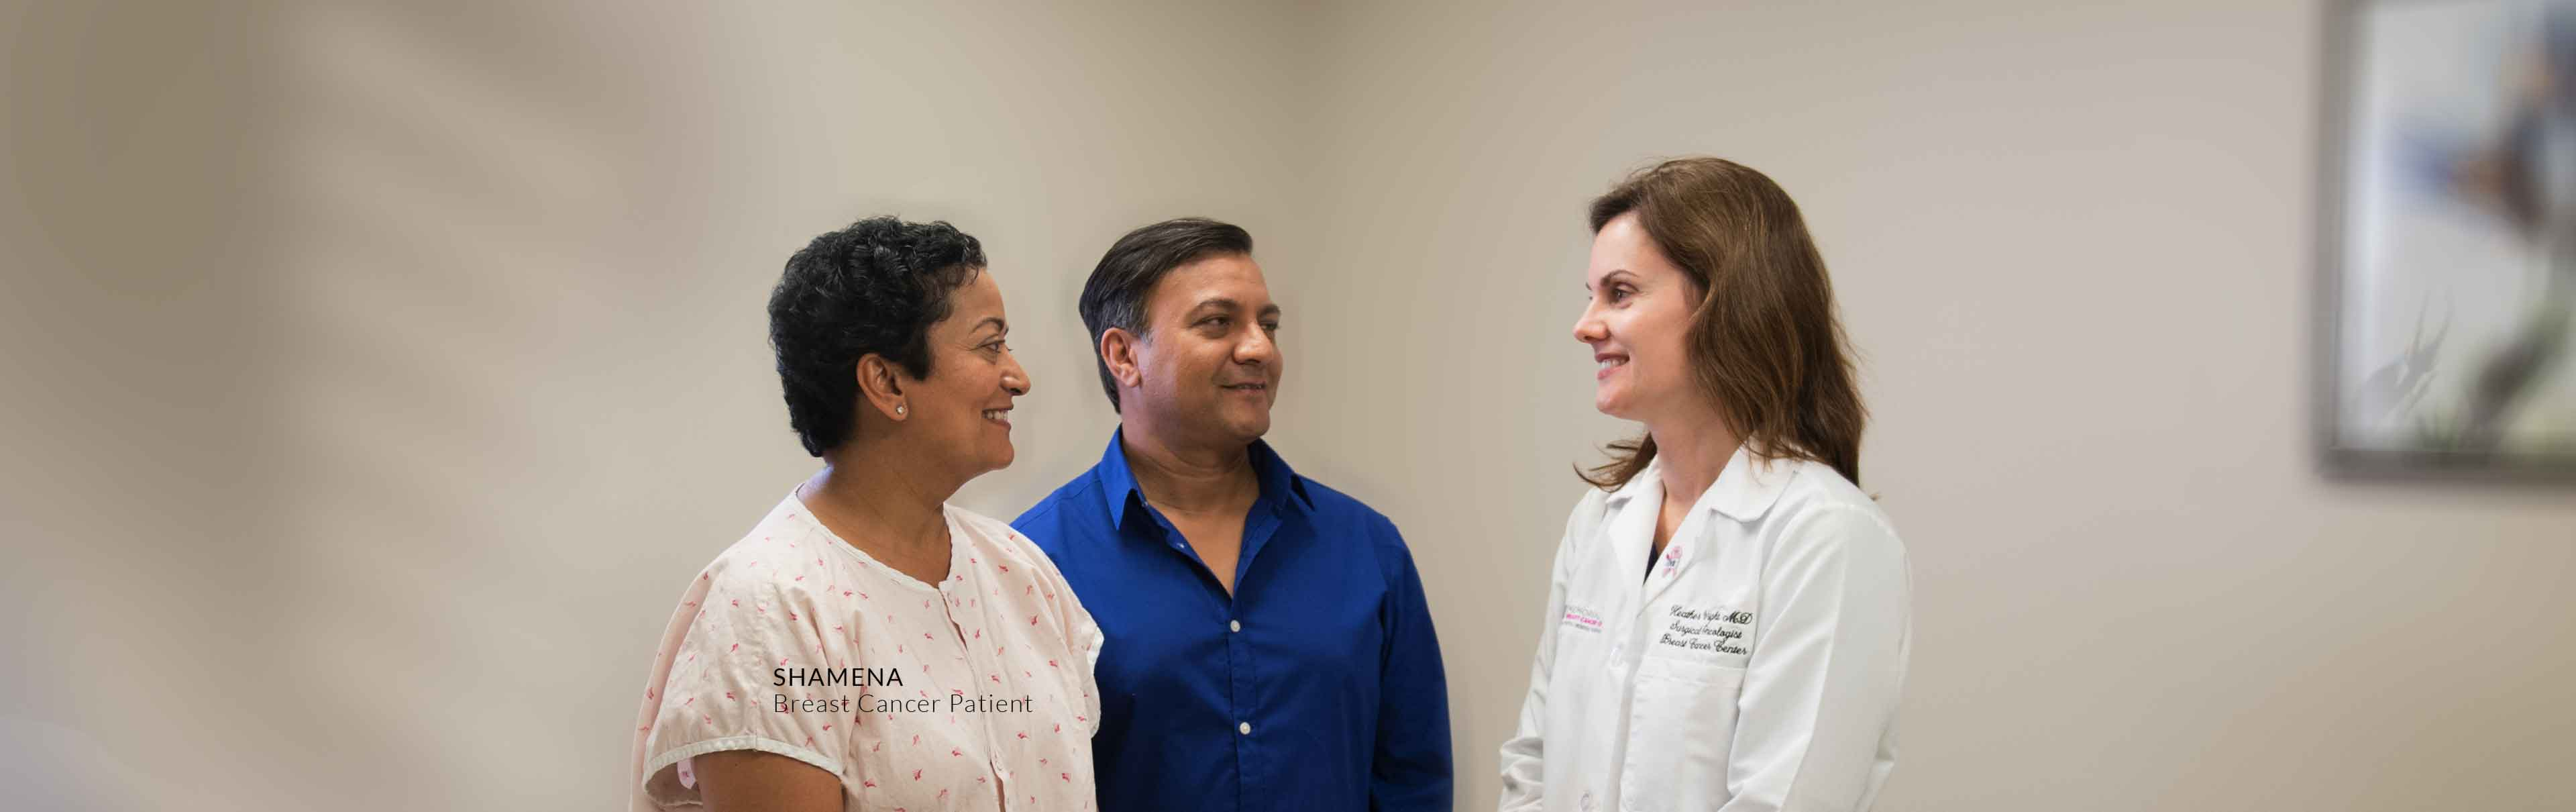 Shamena, Breast Cancer Patient, and husband with Dr. Heather Wright